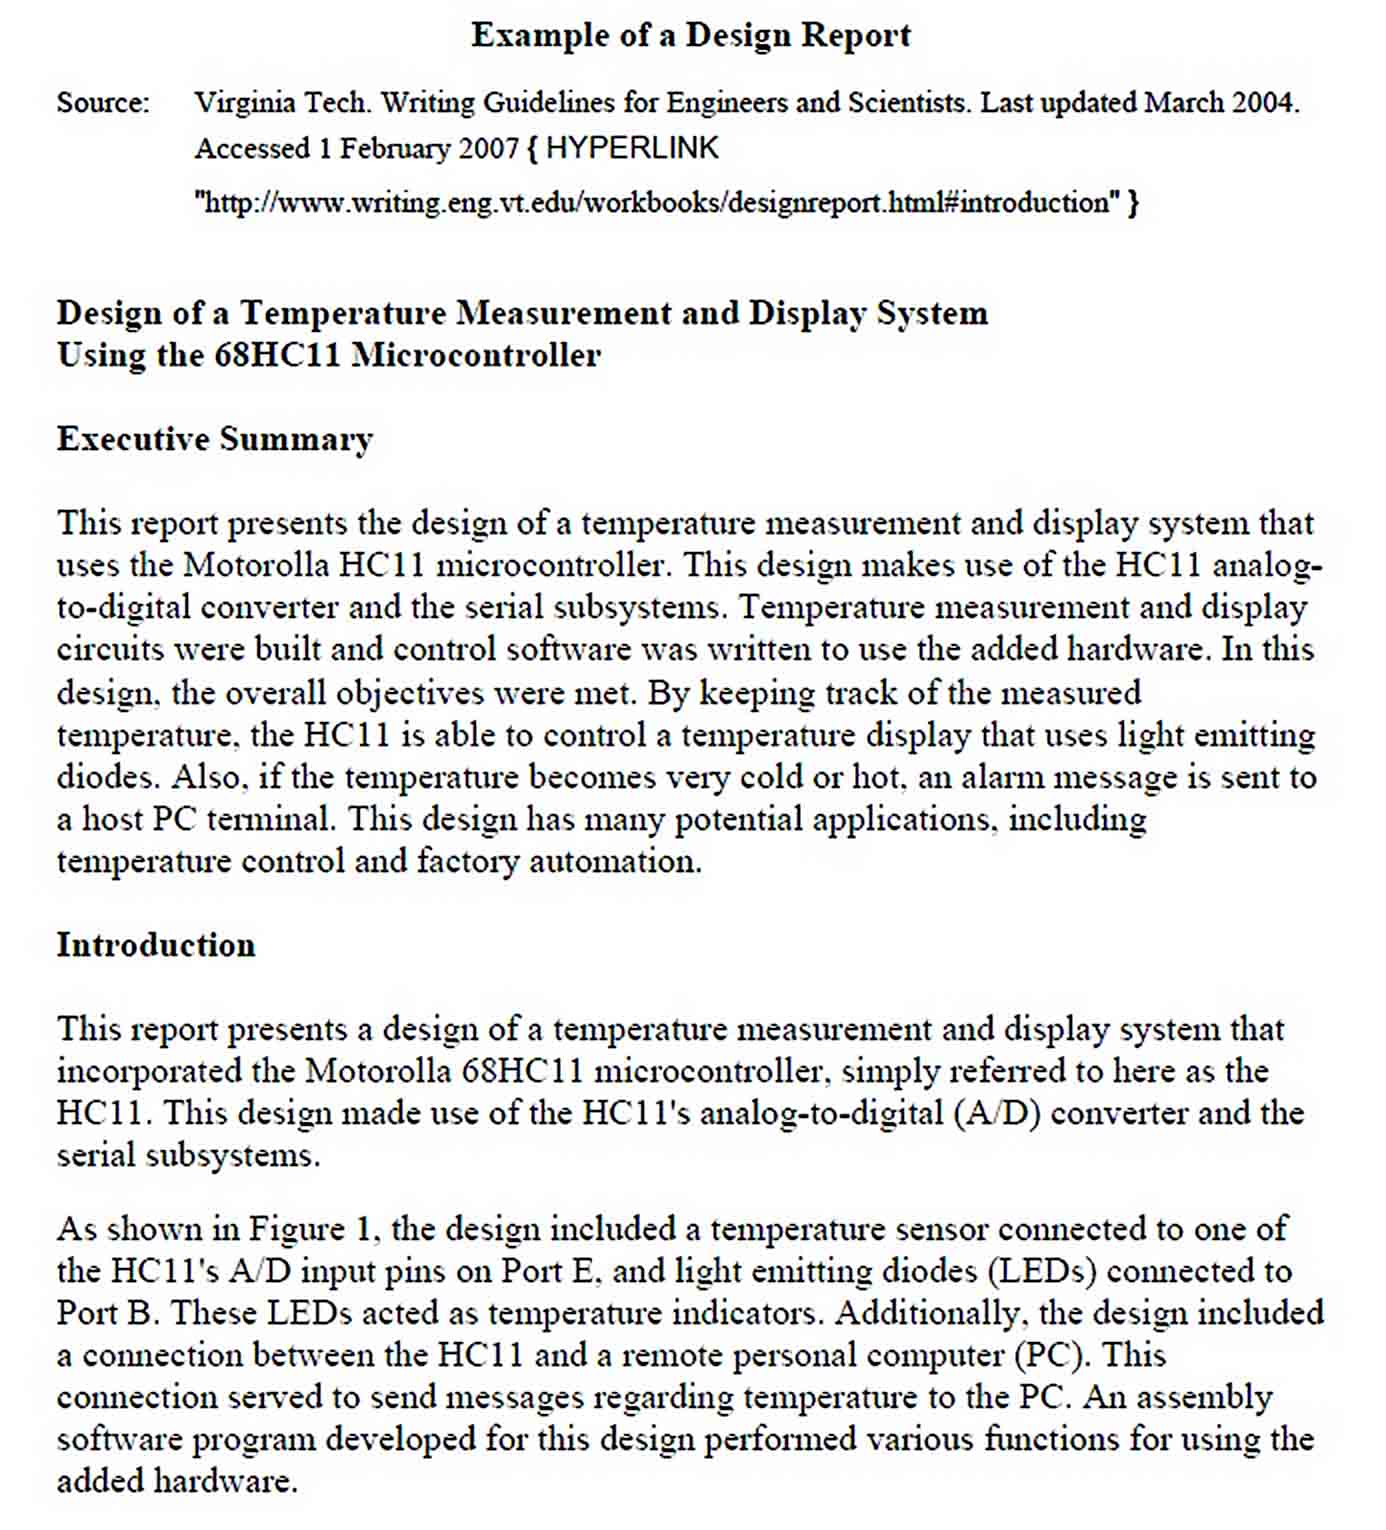 Templates Example of a Design Report2